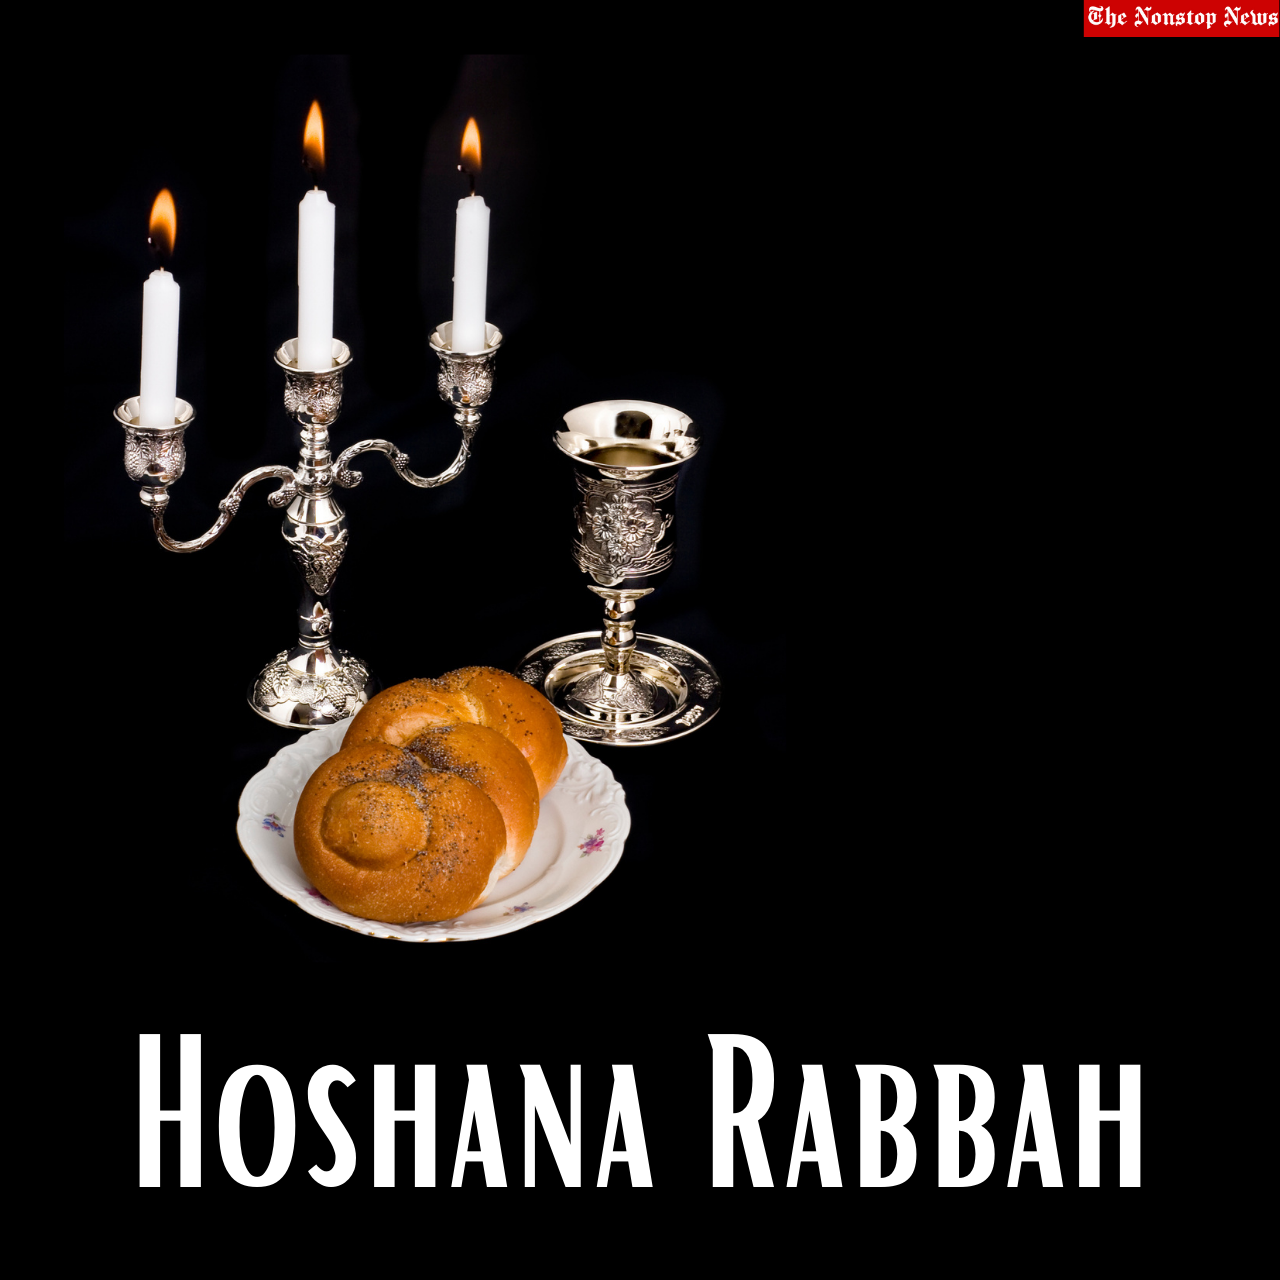 Yom Tov 2021 Greetings, Candle Blessings, Wishes, Quotes, Images, and Stickers to share